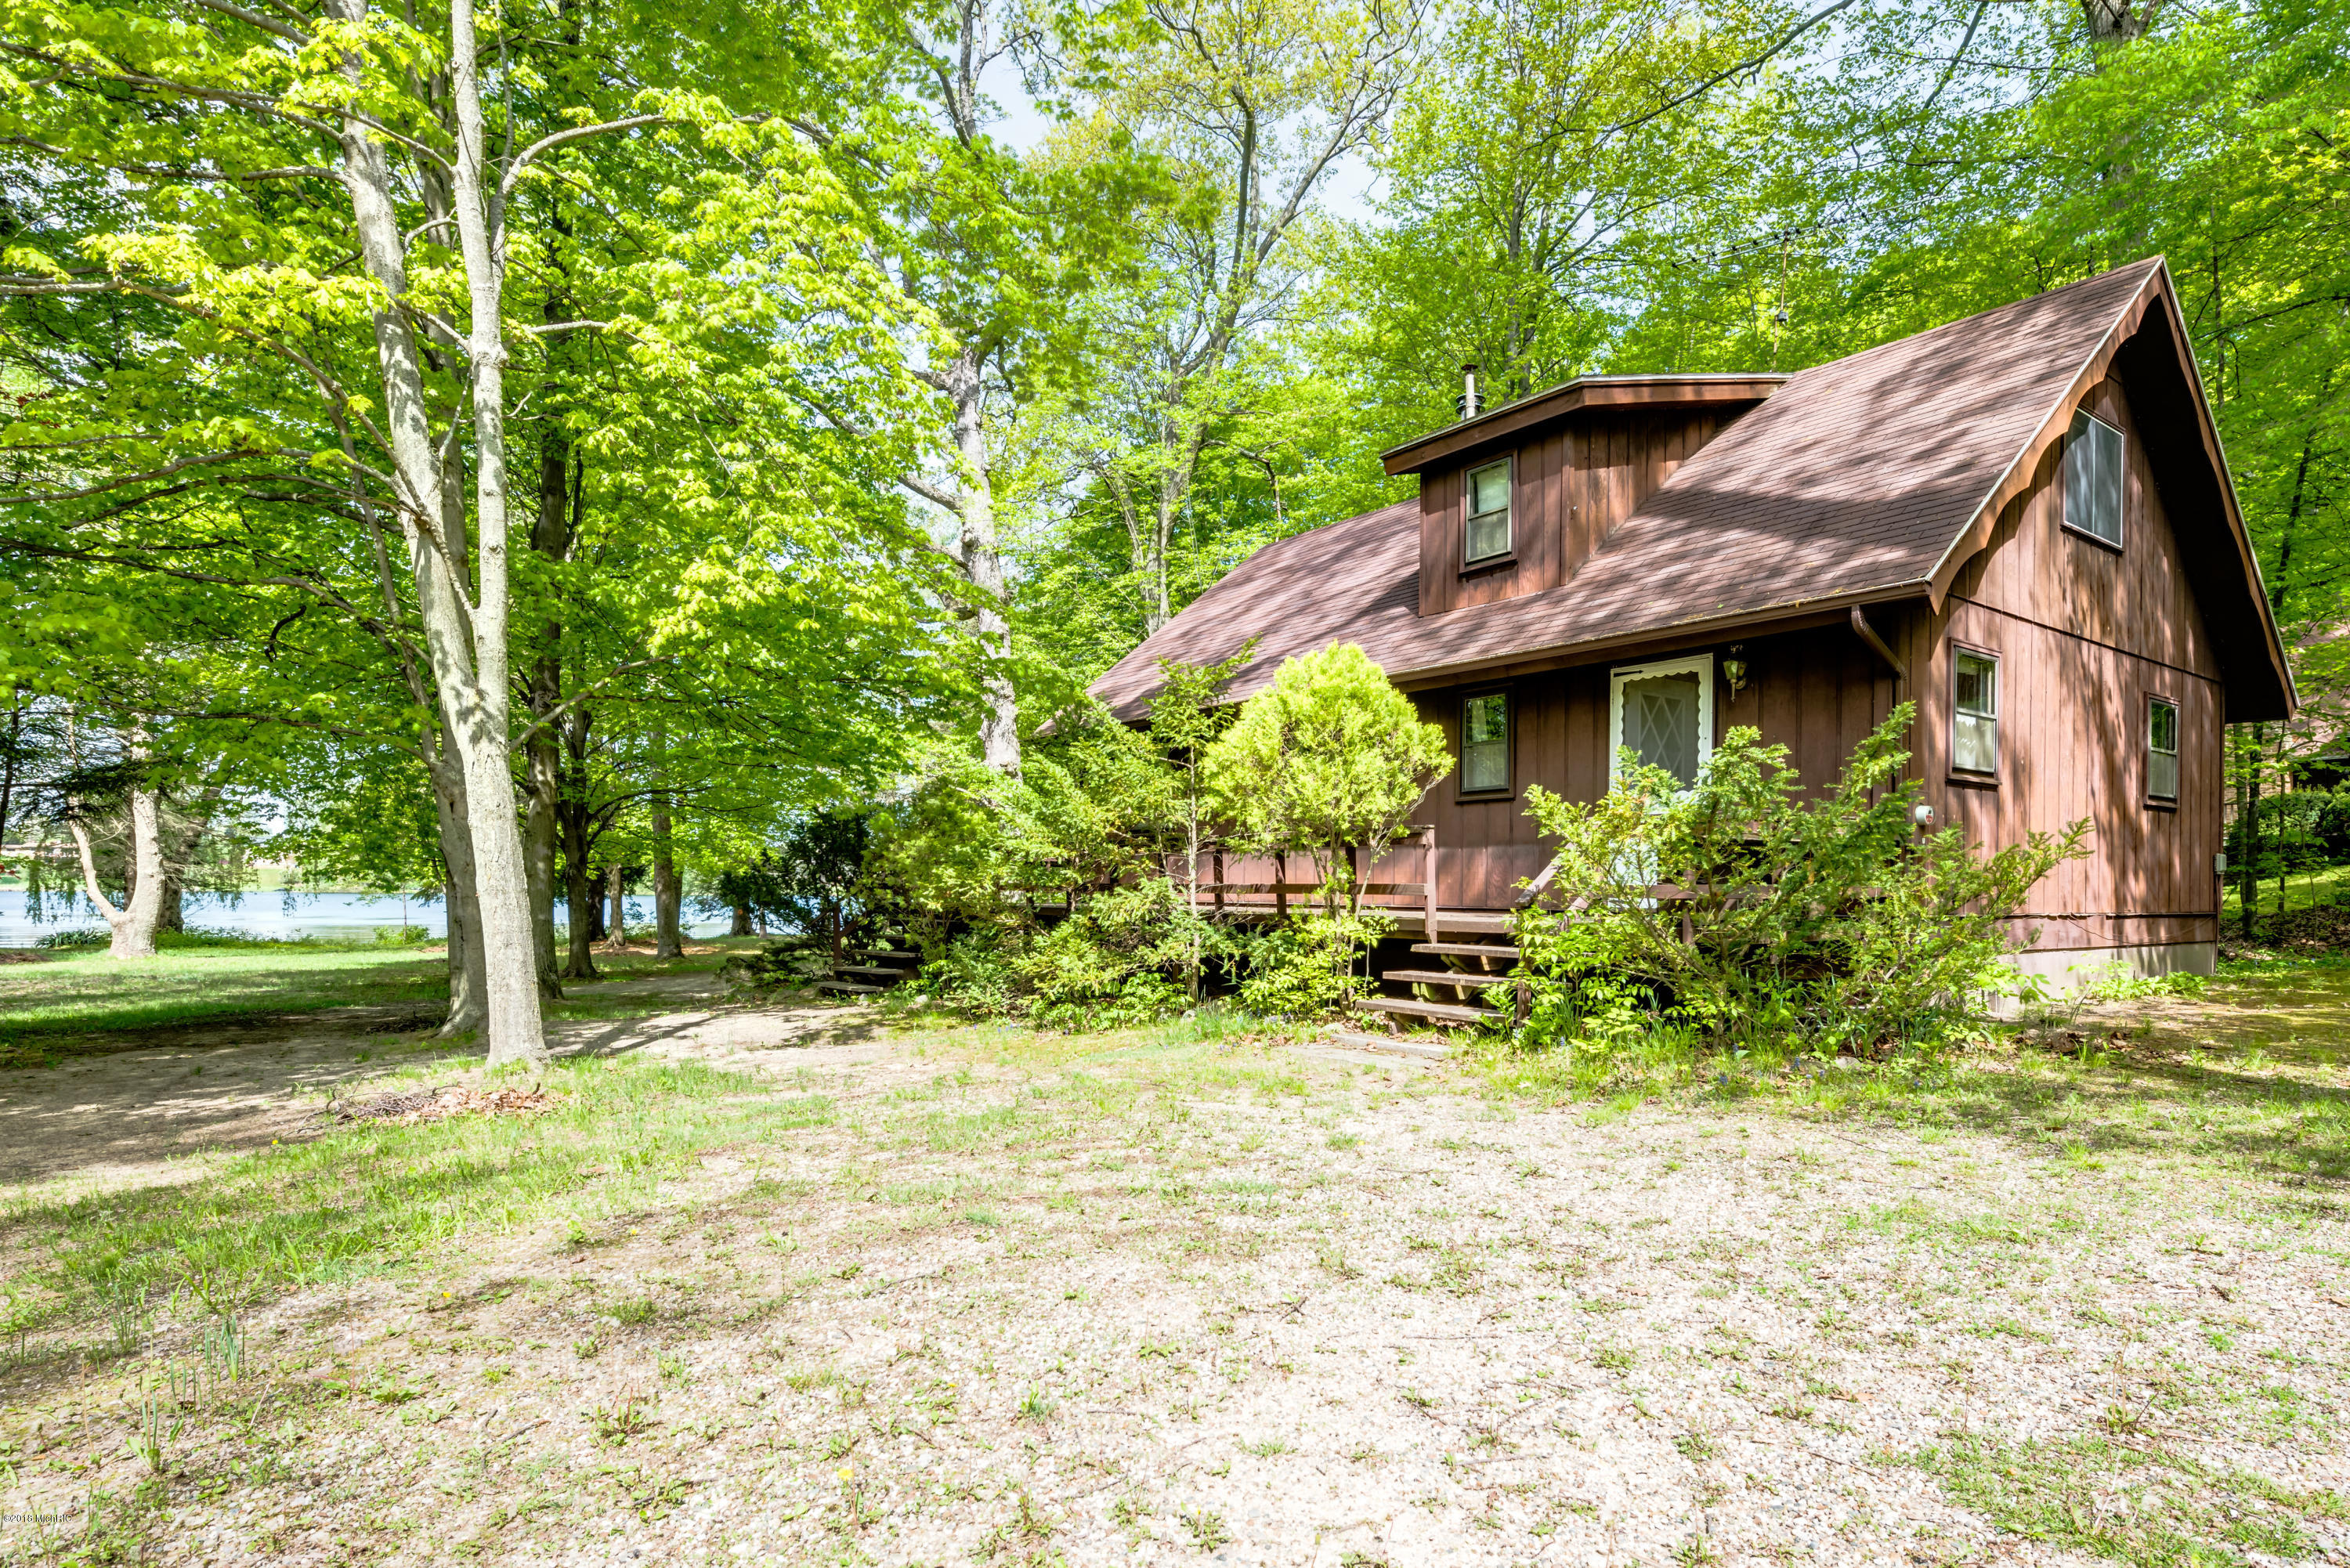 Photo for 61906 56th Street, Lawrence, MI 49064 (MLS # 18021971)